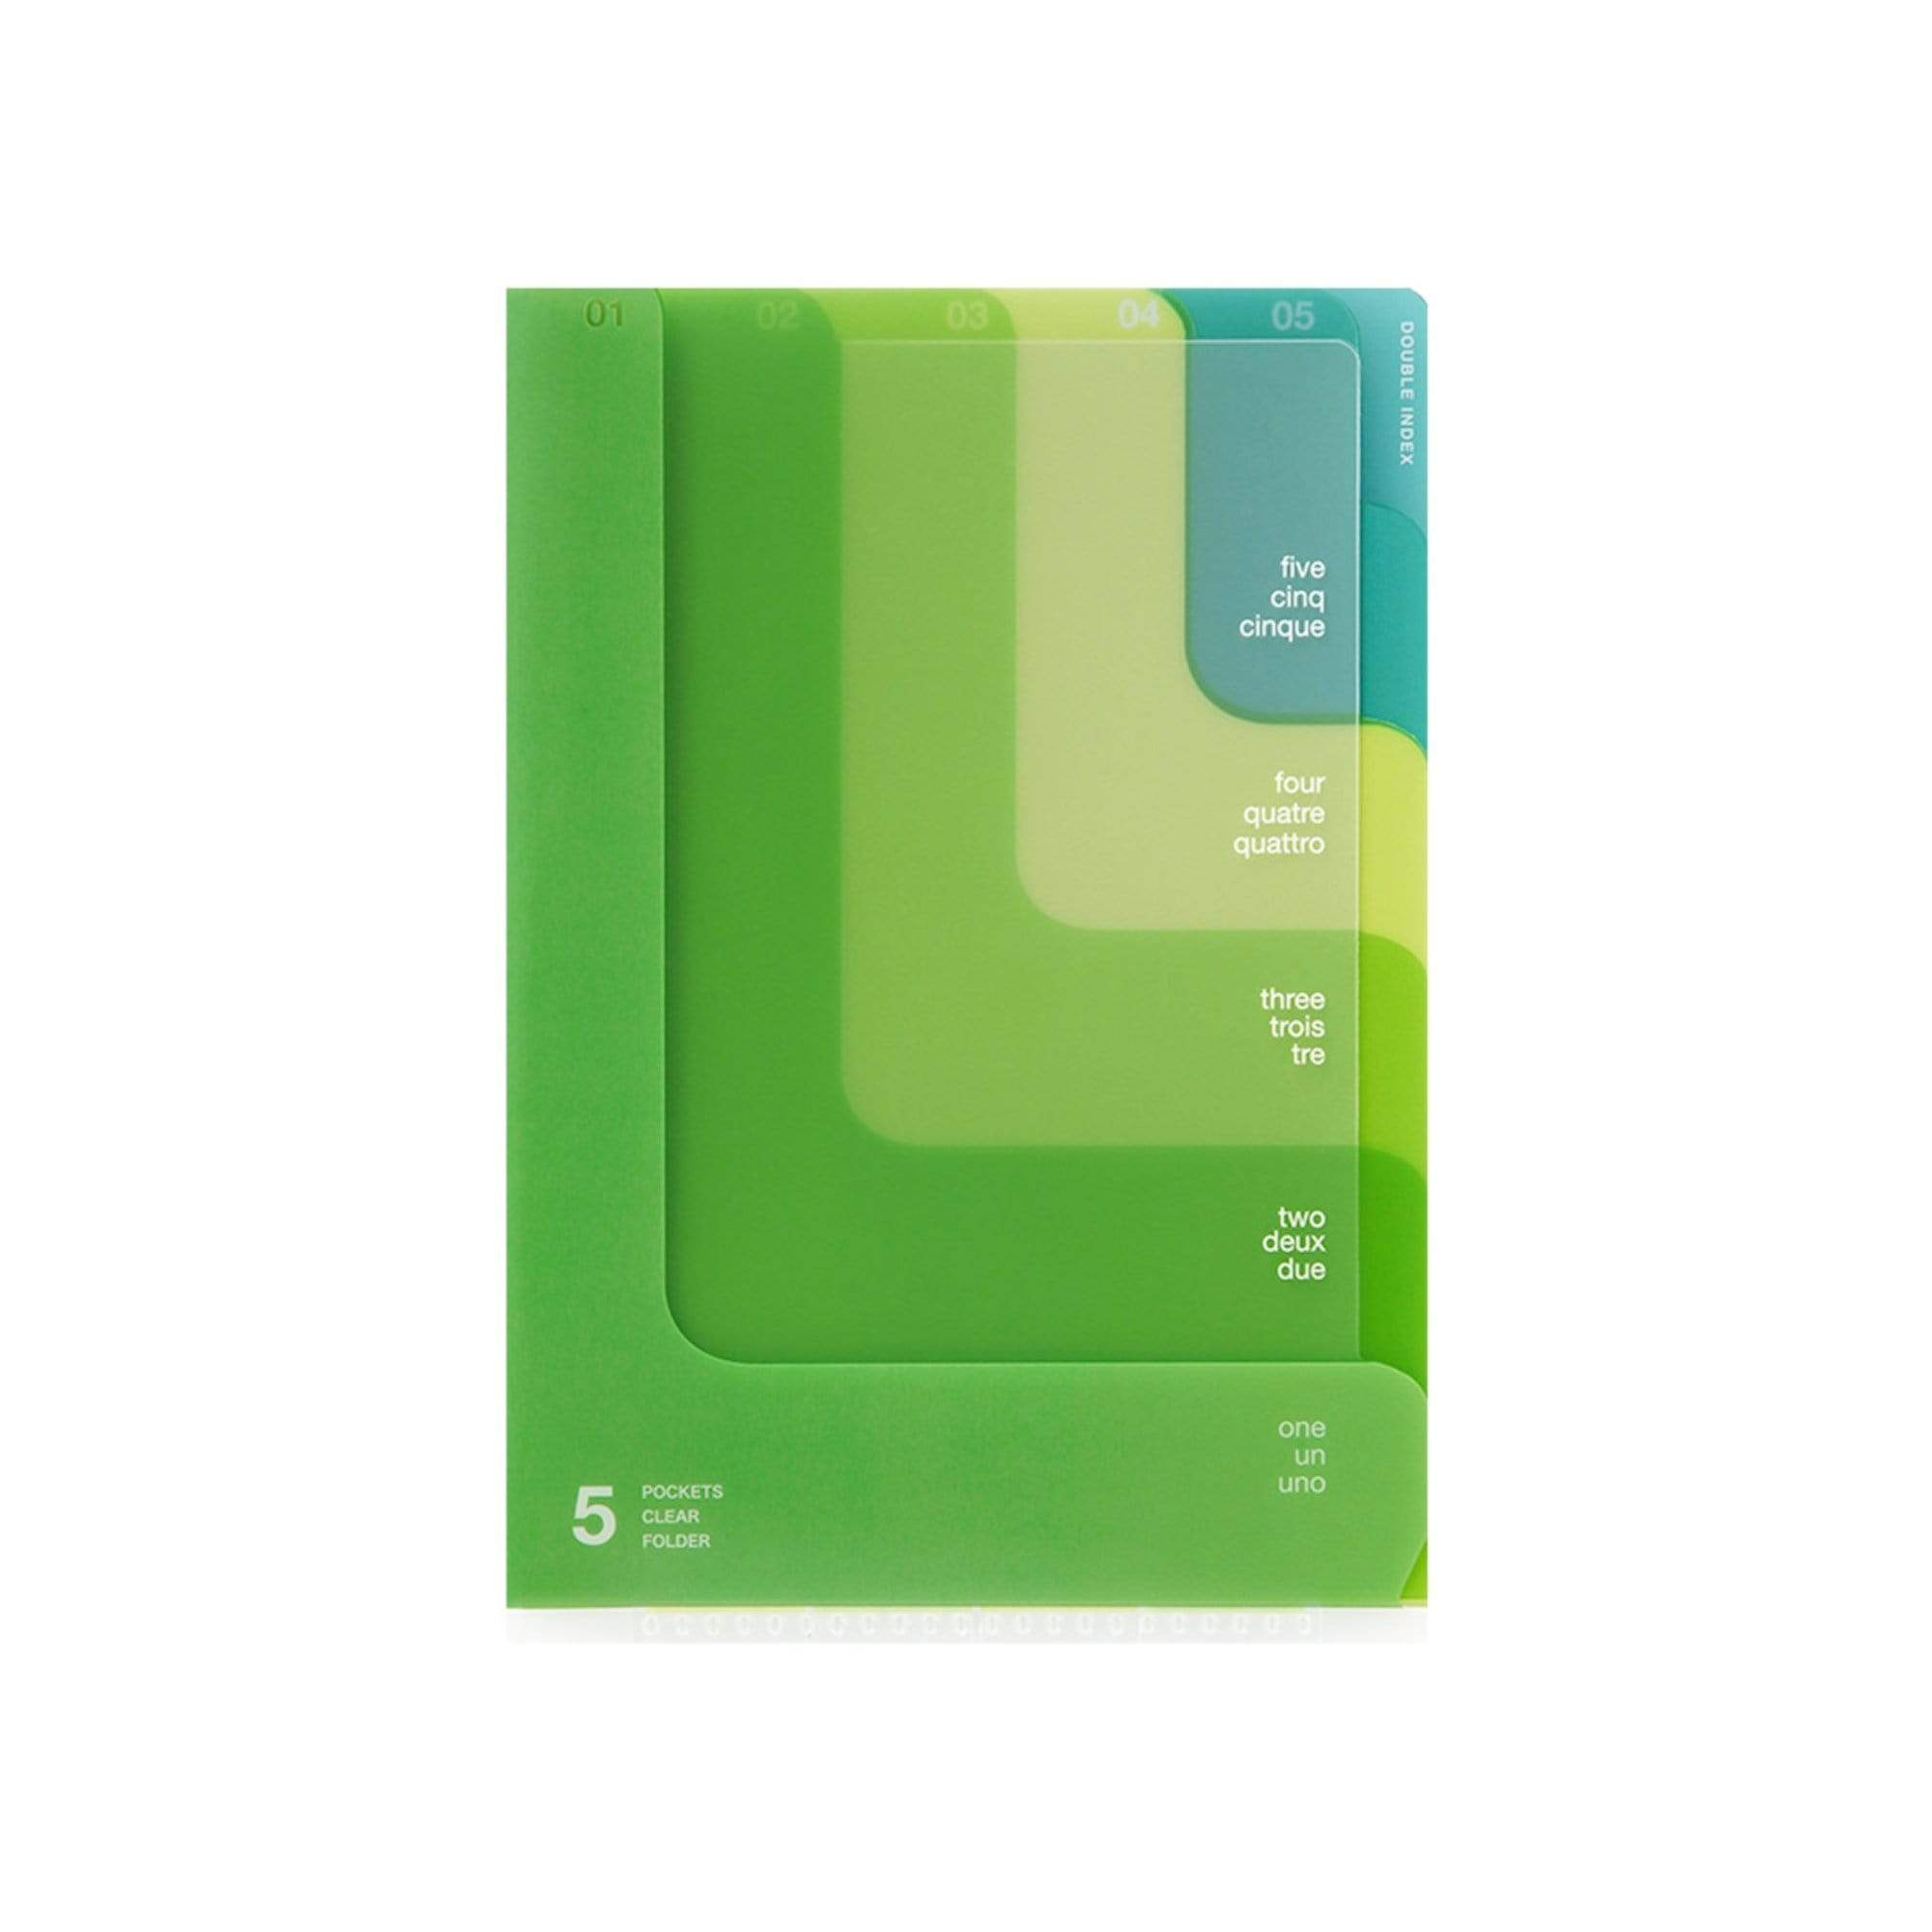 Midori MD A6 5 Pocket Clear Folder | 2-Way Blue Gradient Yellow & Green - The Stationery Life!